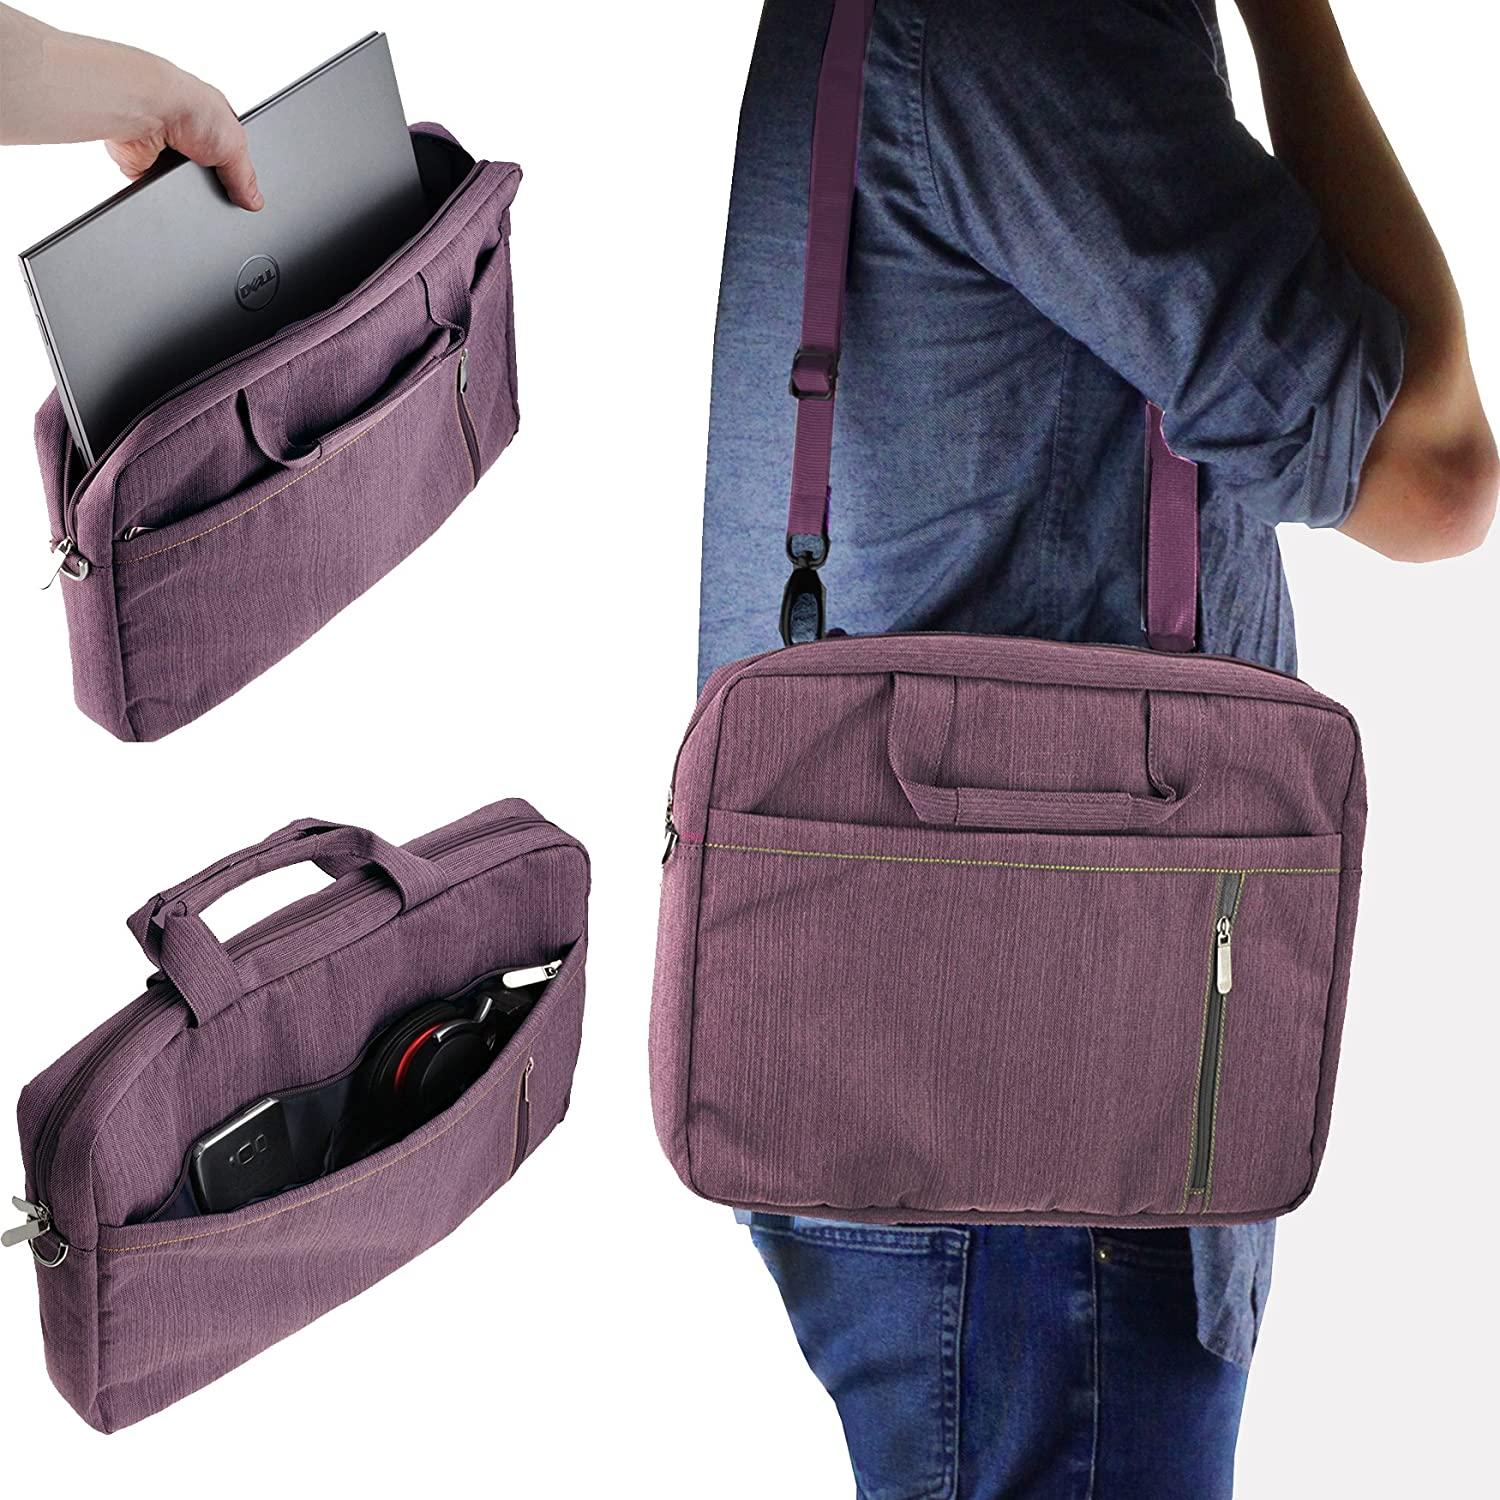 Navitech Purple Sleek Premium Water Resistant Shock Absorbent Carry Bag Case Compatible with The The Acer Travelmate P259 14 inch